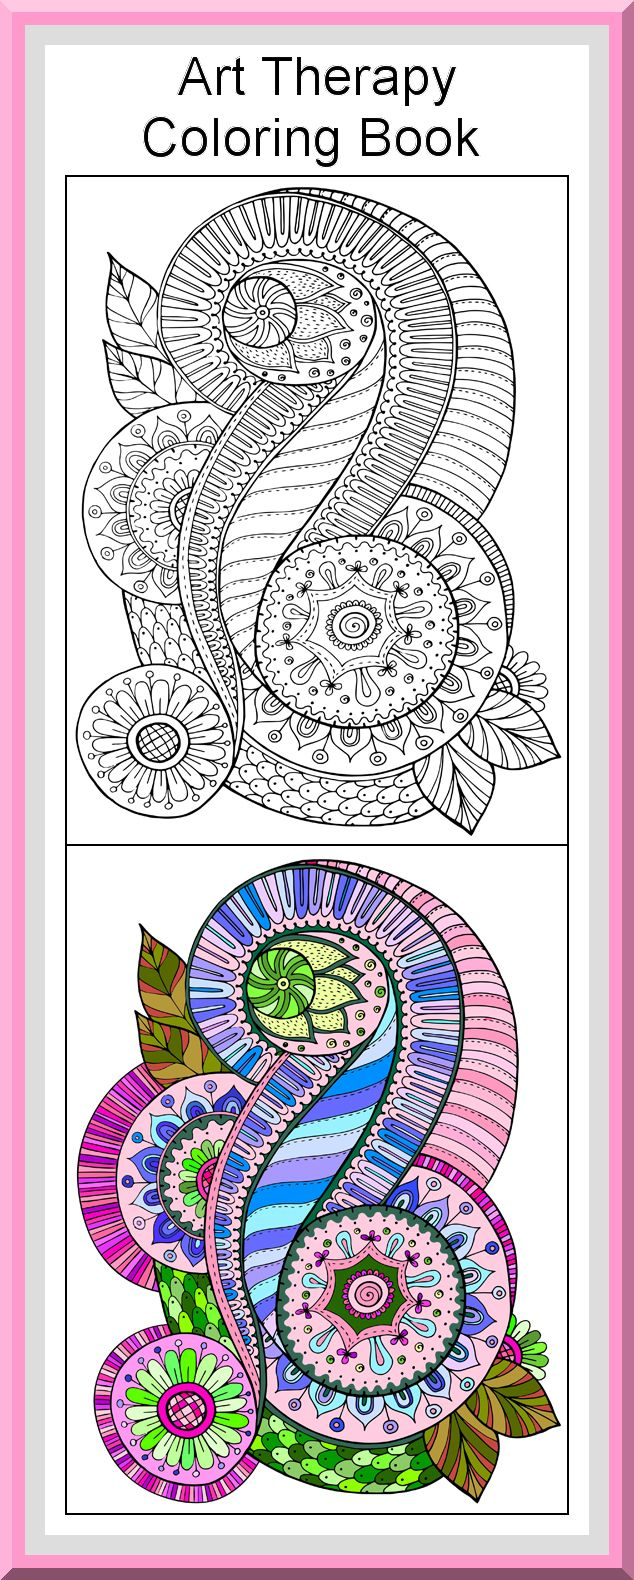 Printable Art Therapy Coloring Pages 30 High Definition